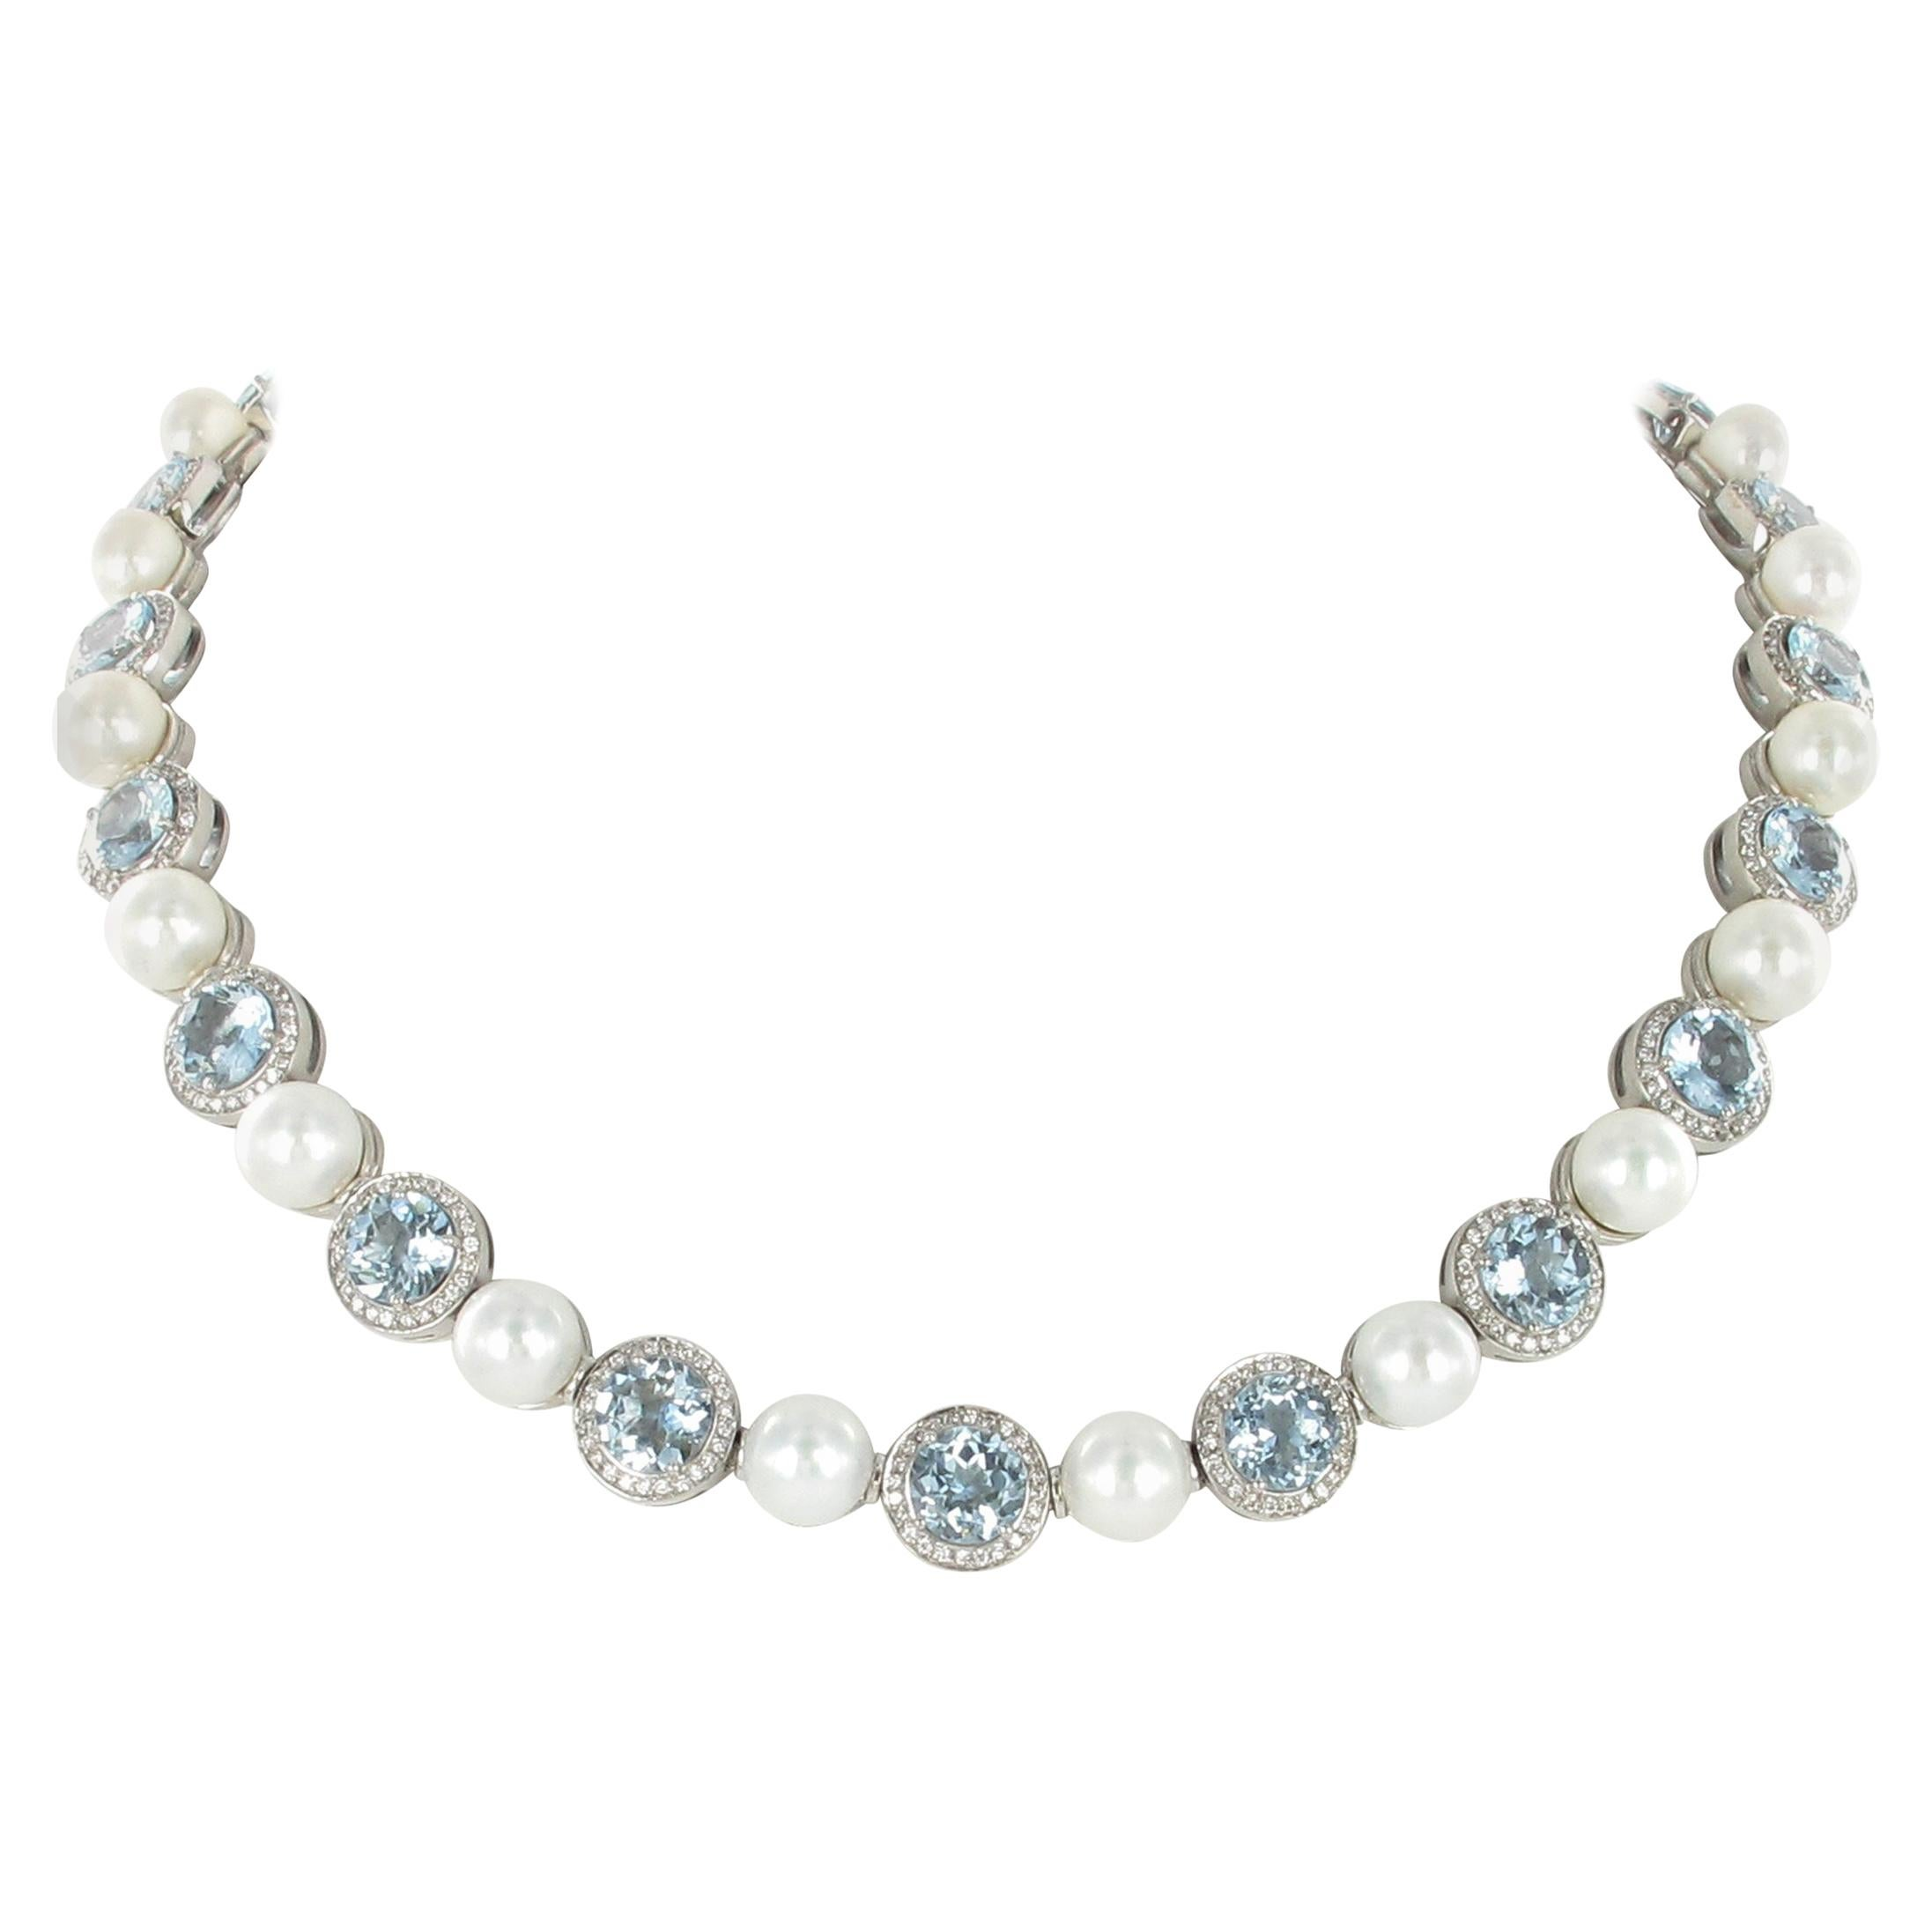 Aquamarine, Cultured Pearls and Diamond Necklace in Gold